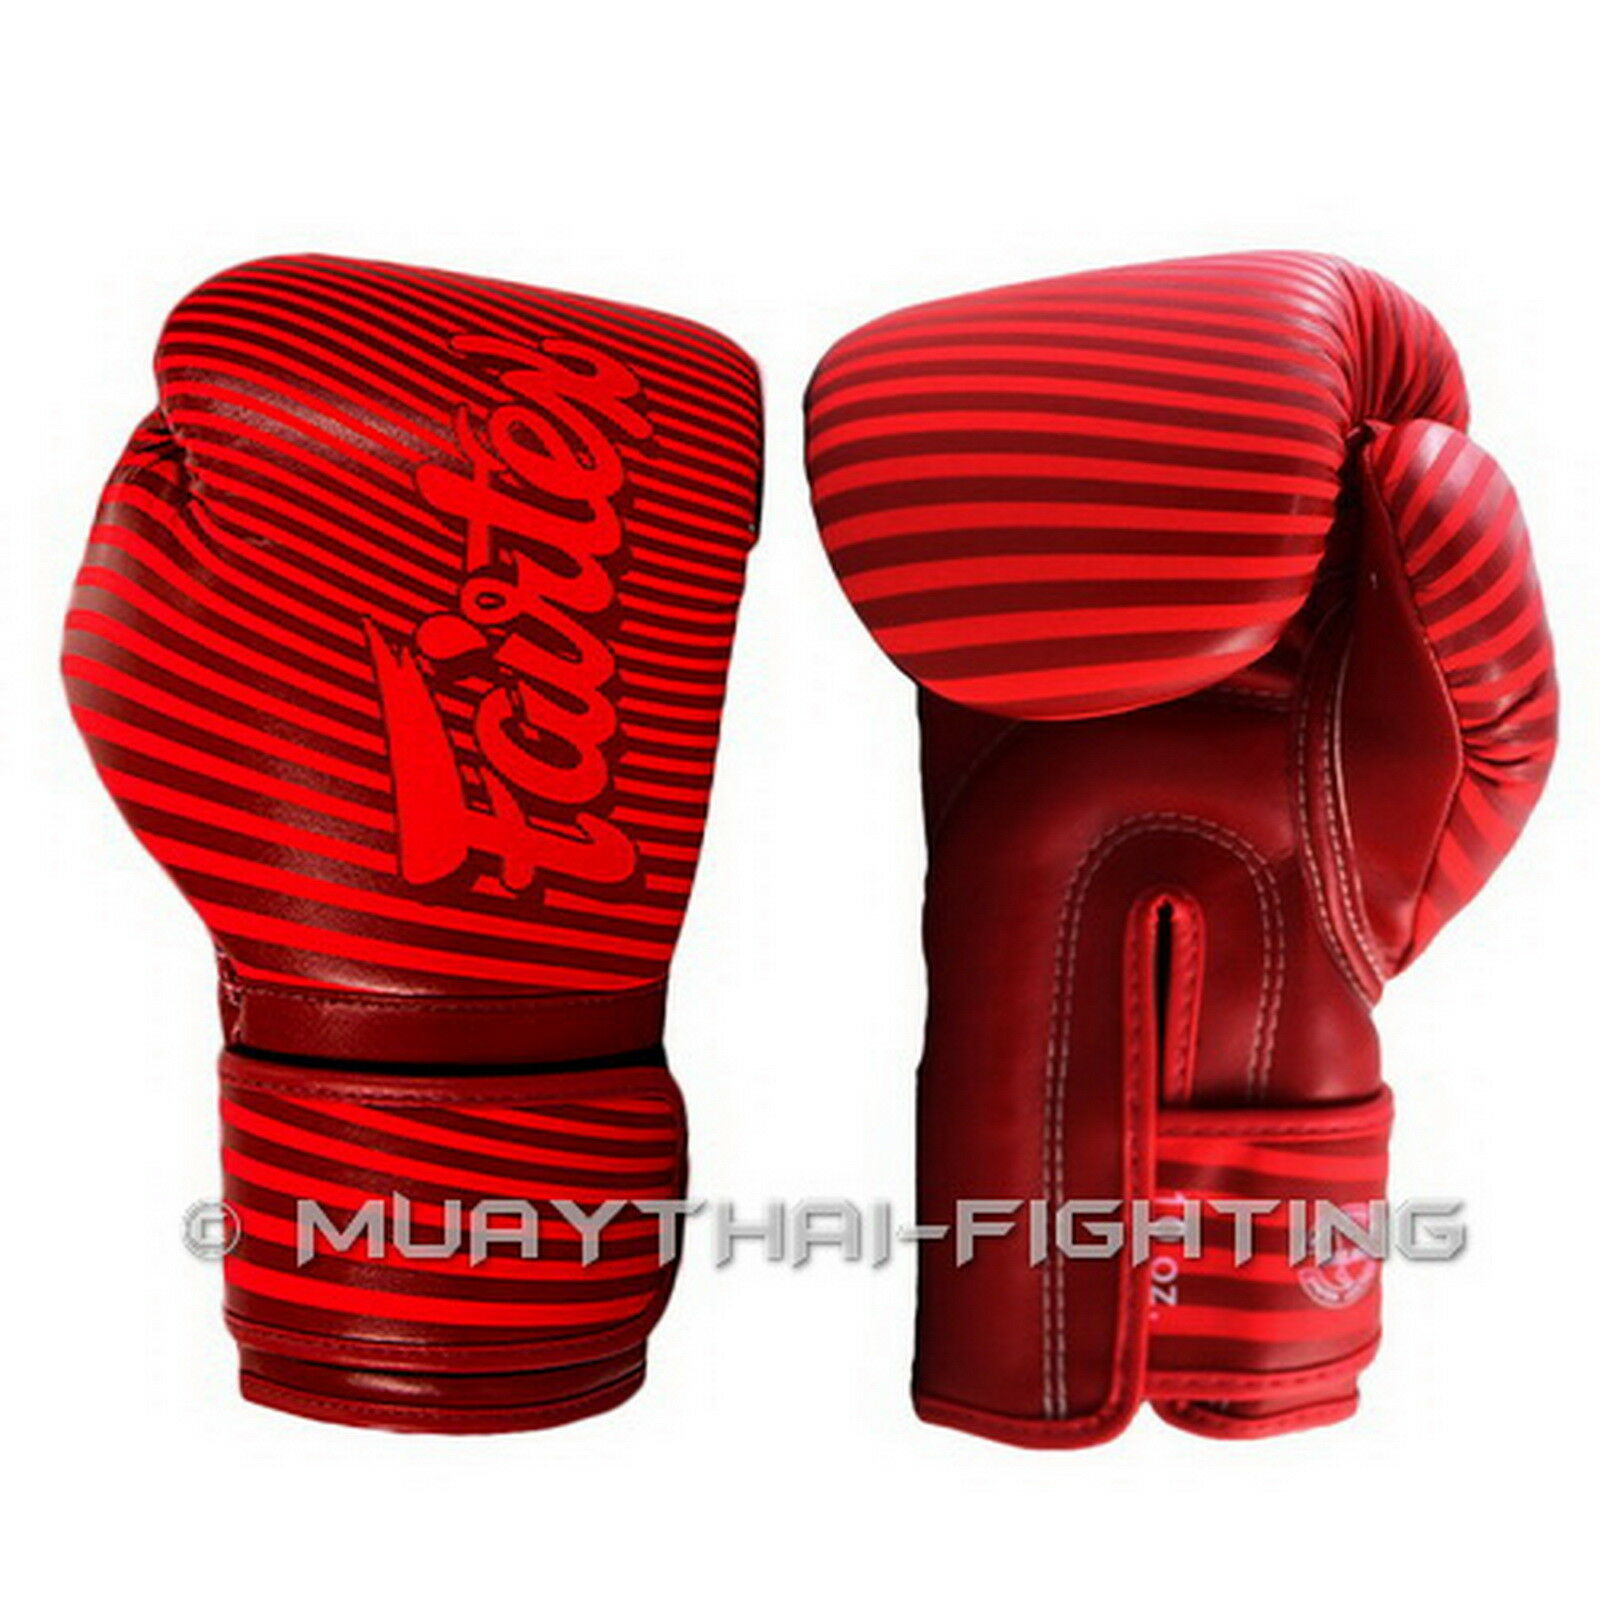 Fairtex Fancy Boxing Gloves Bgv1 Dark Cloud